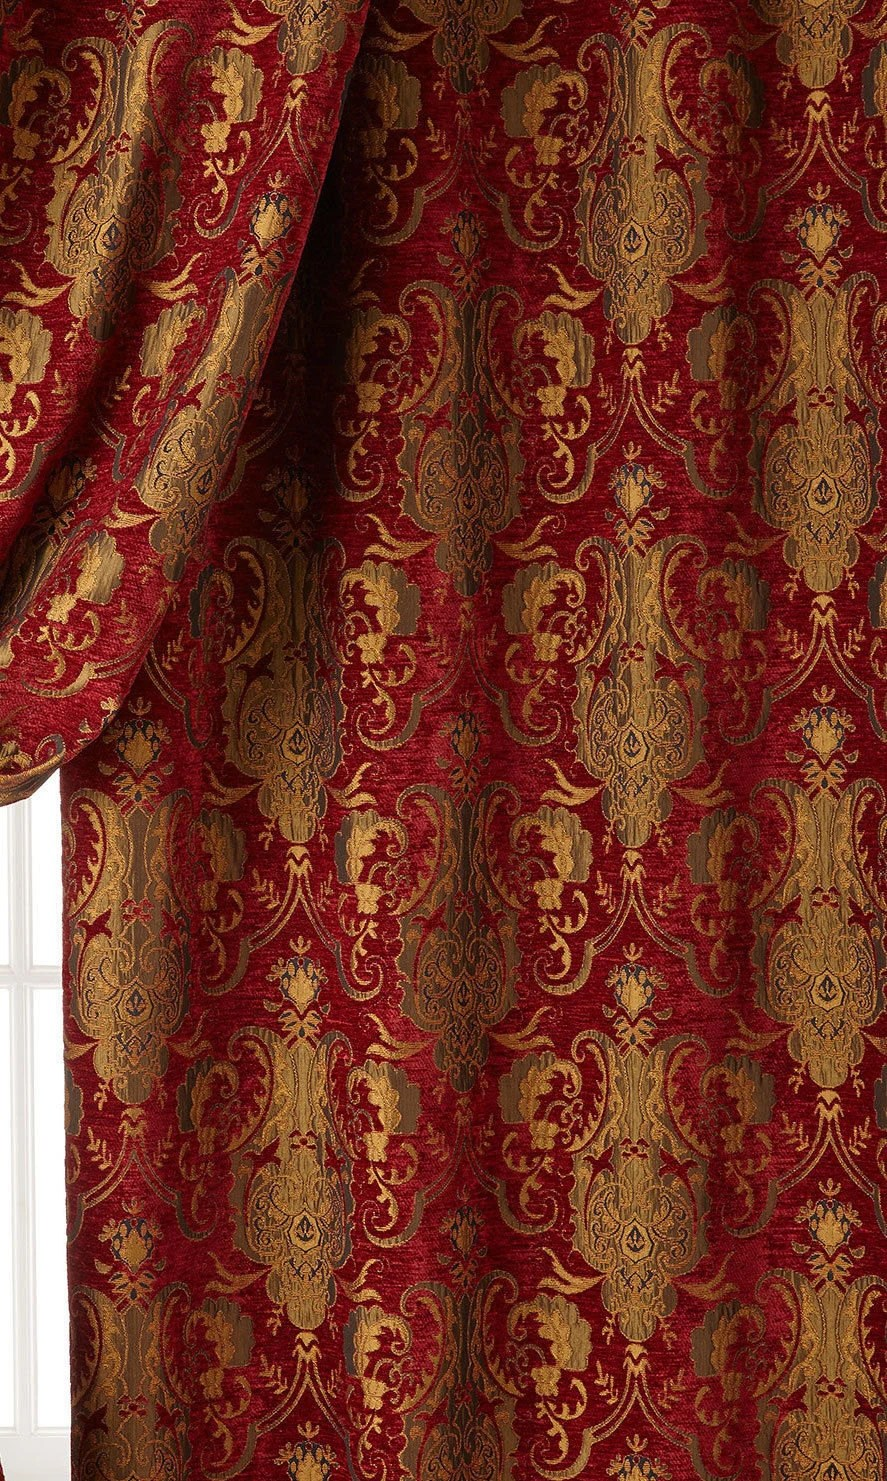 Red Damask Upholstery Fabric